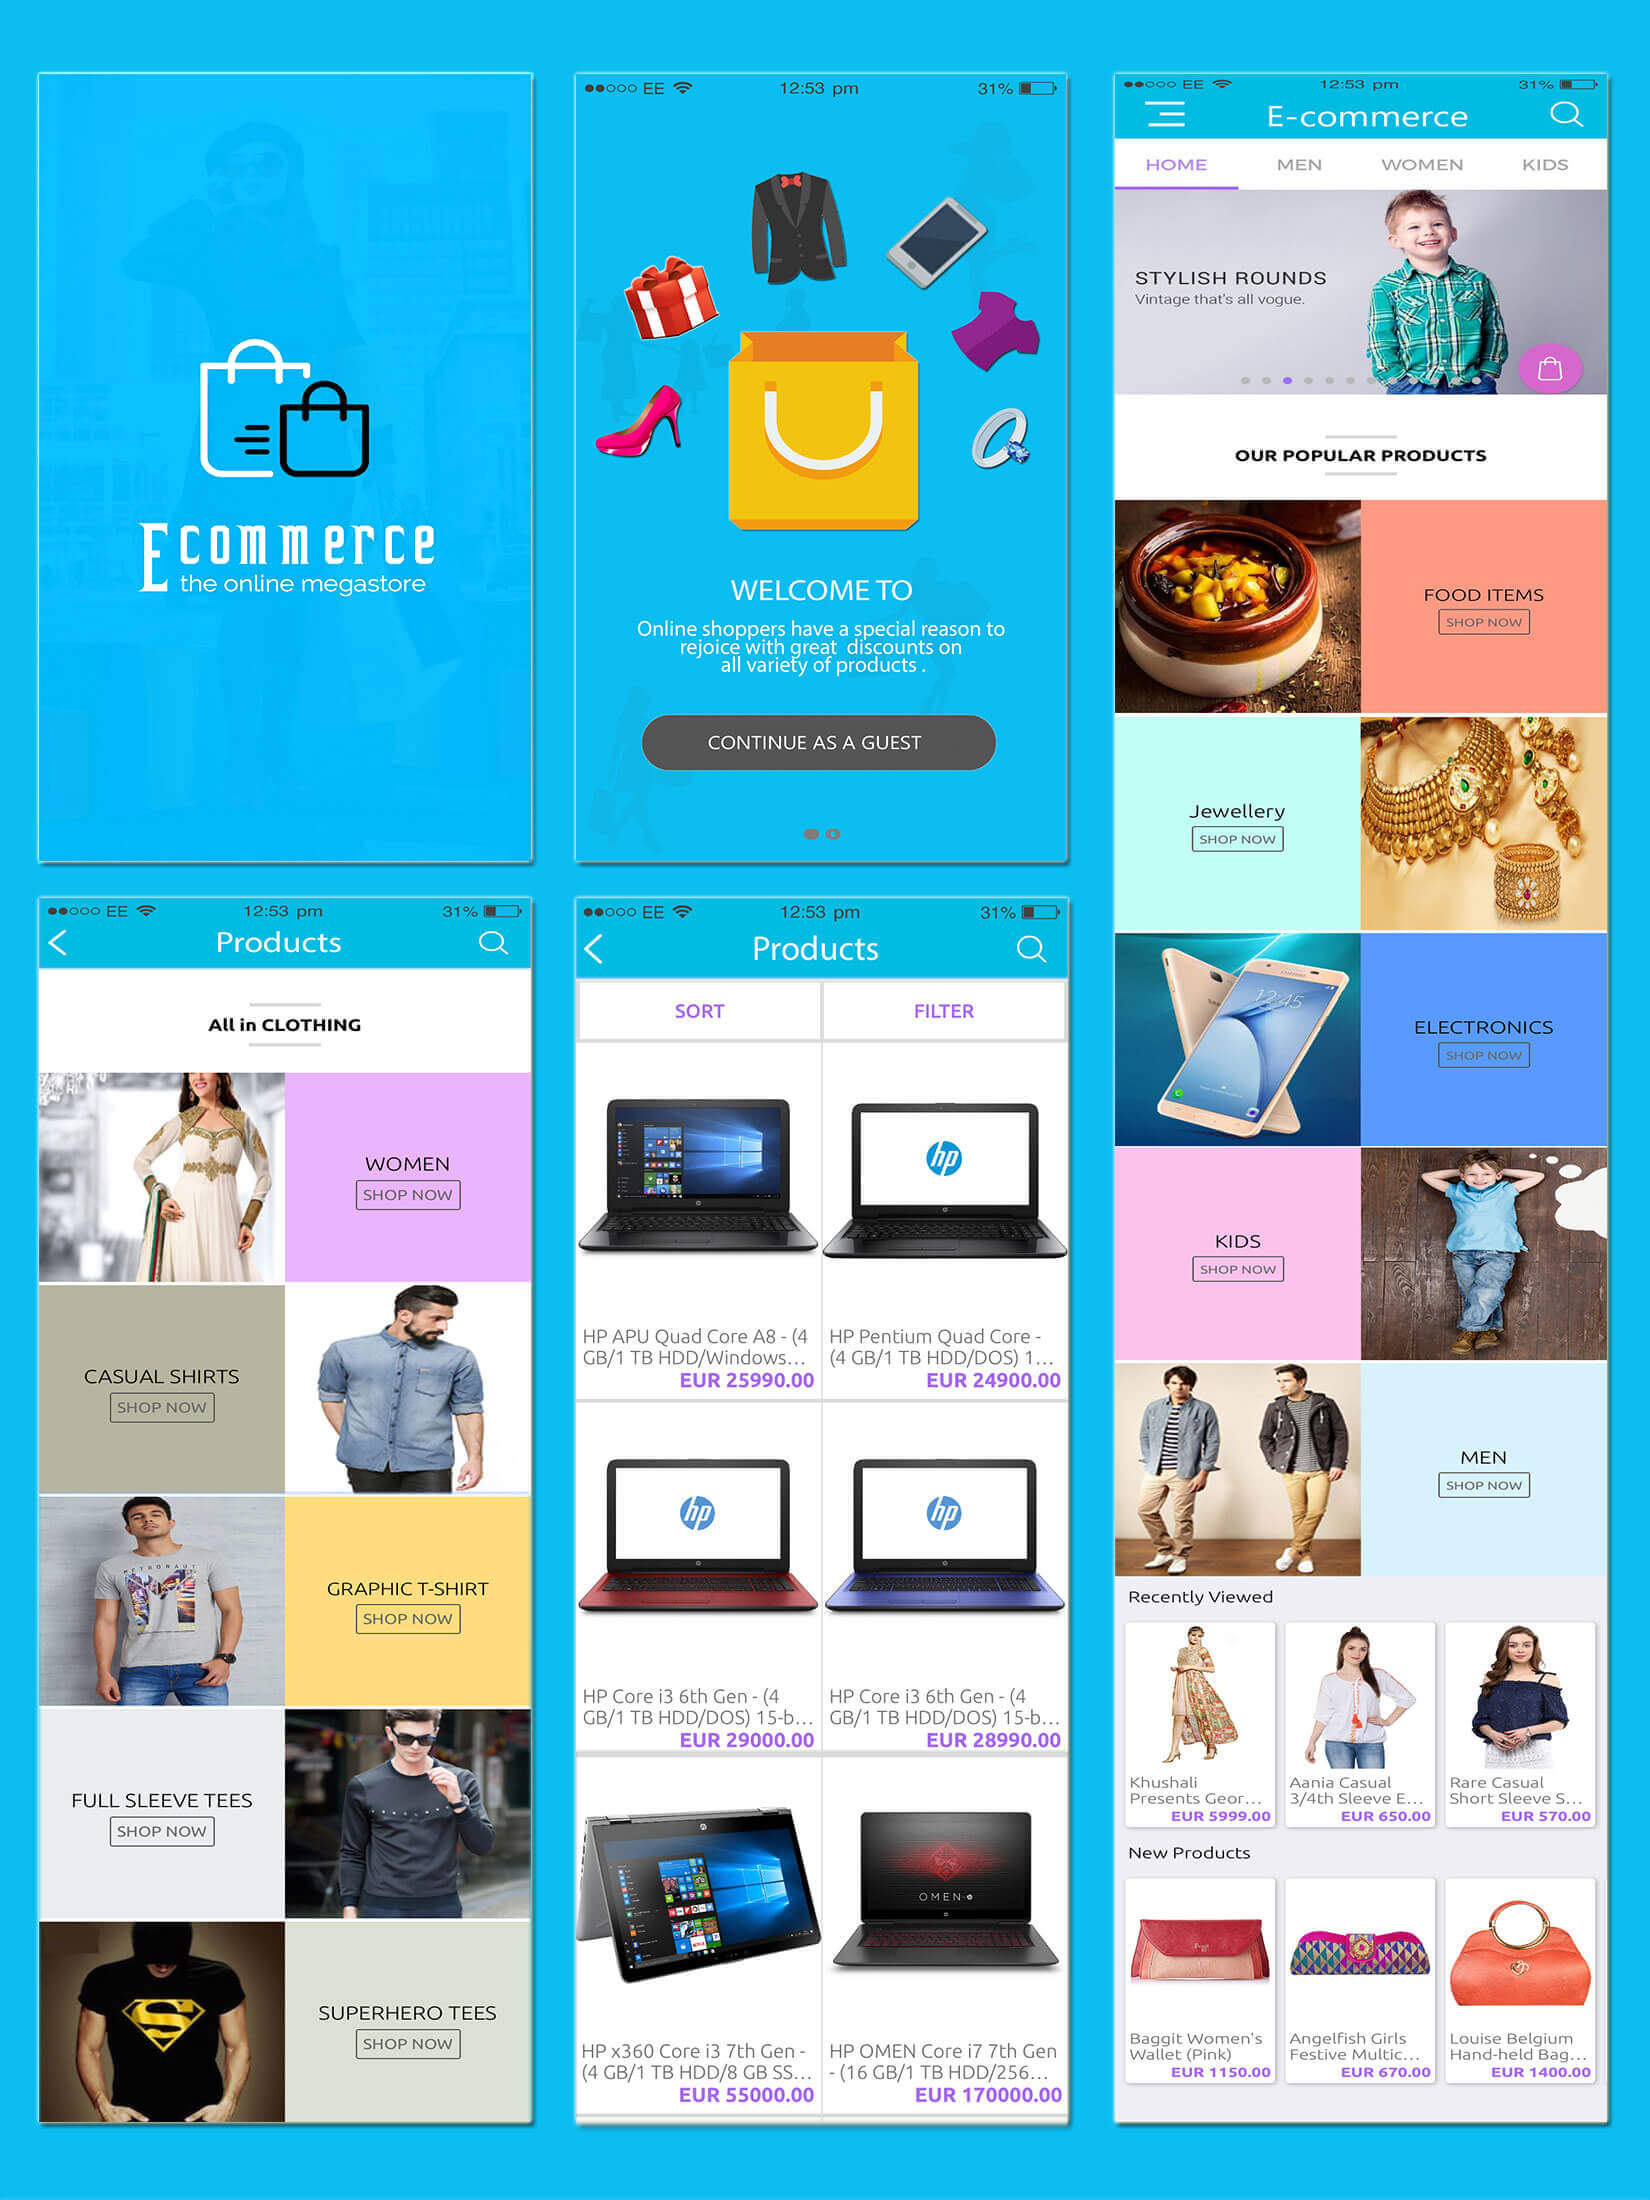 E-Commerce Android Native App with Powerful Cloud Backend - 8